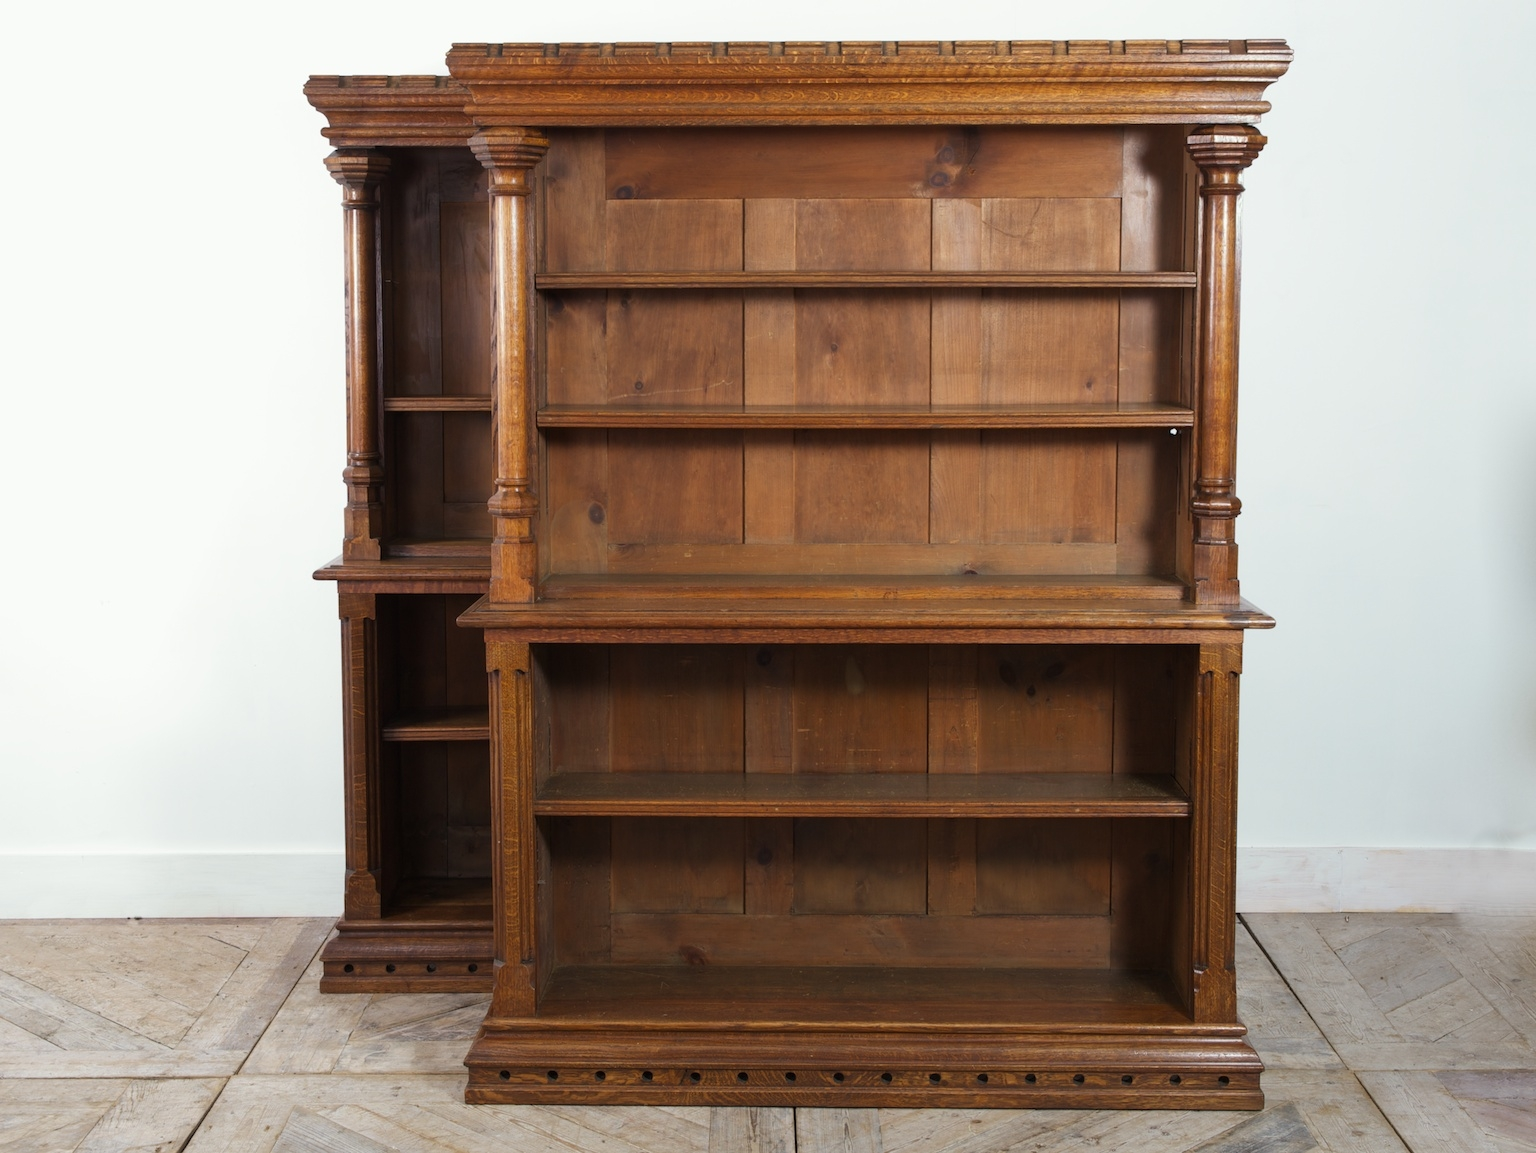 Gothic Style Oak Bookcases 1900s Set Of 2 For Sale At Pamono Pertaining To Oak Bookcases (View 4 of 15)